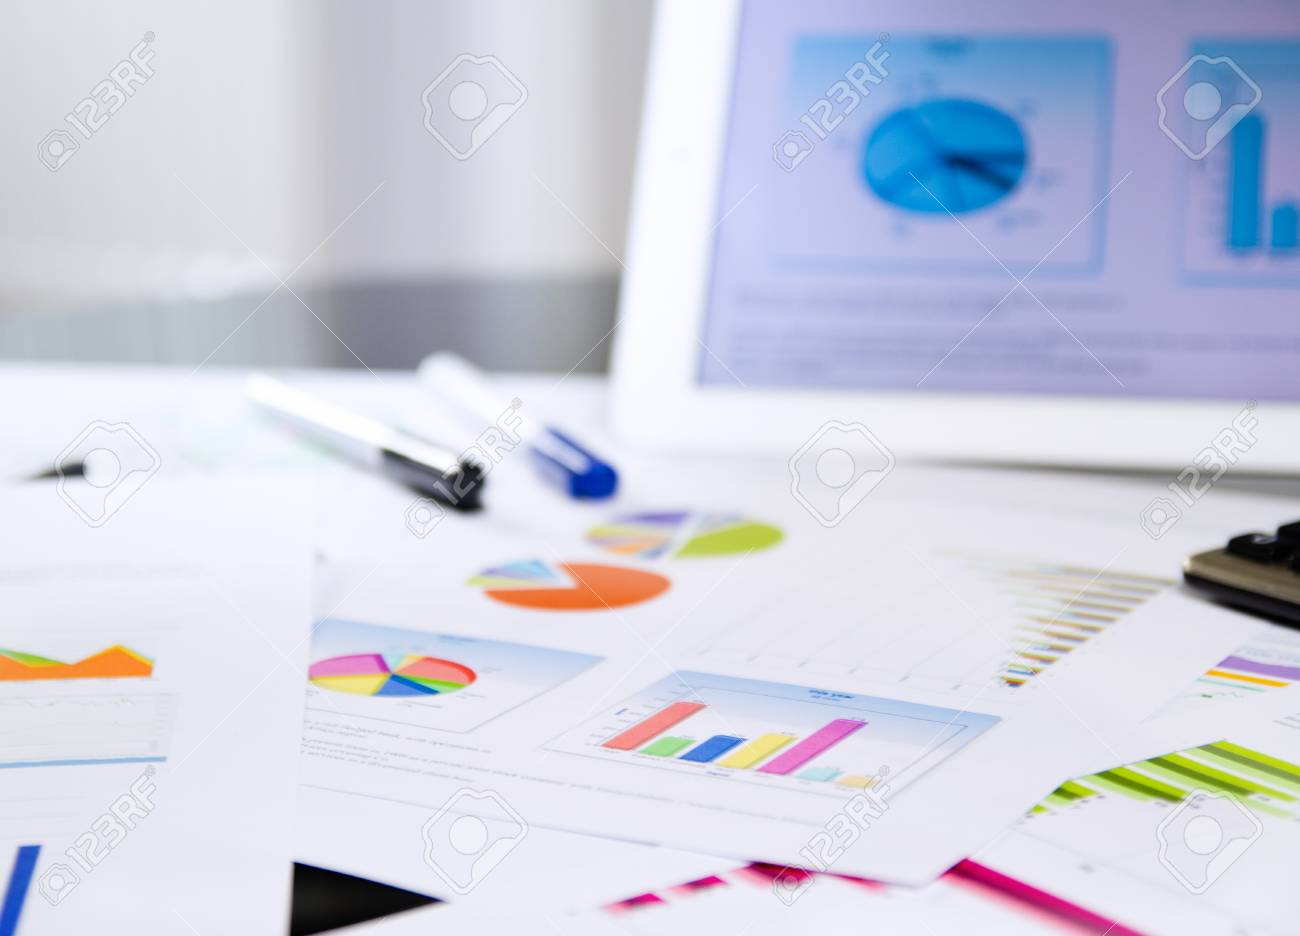 bunch of business documents - charts and graphs on the desktop Stock Photo - 18135353